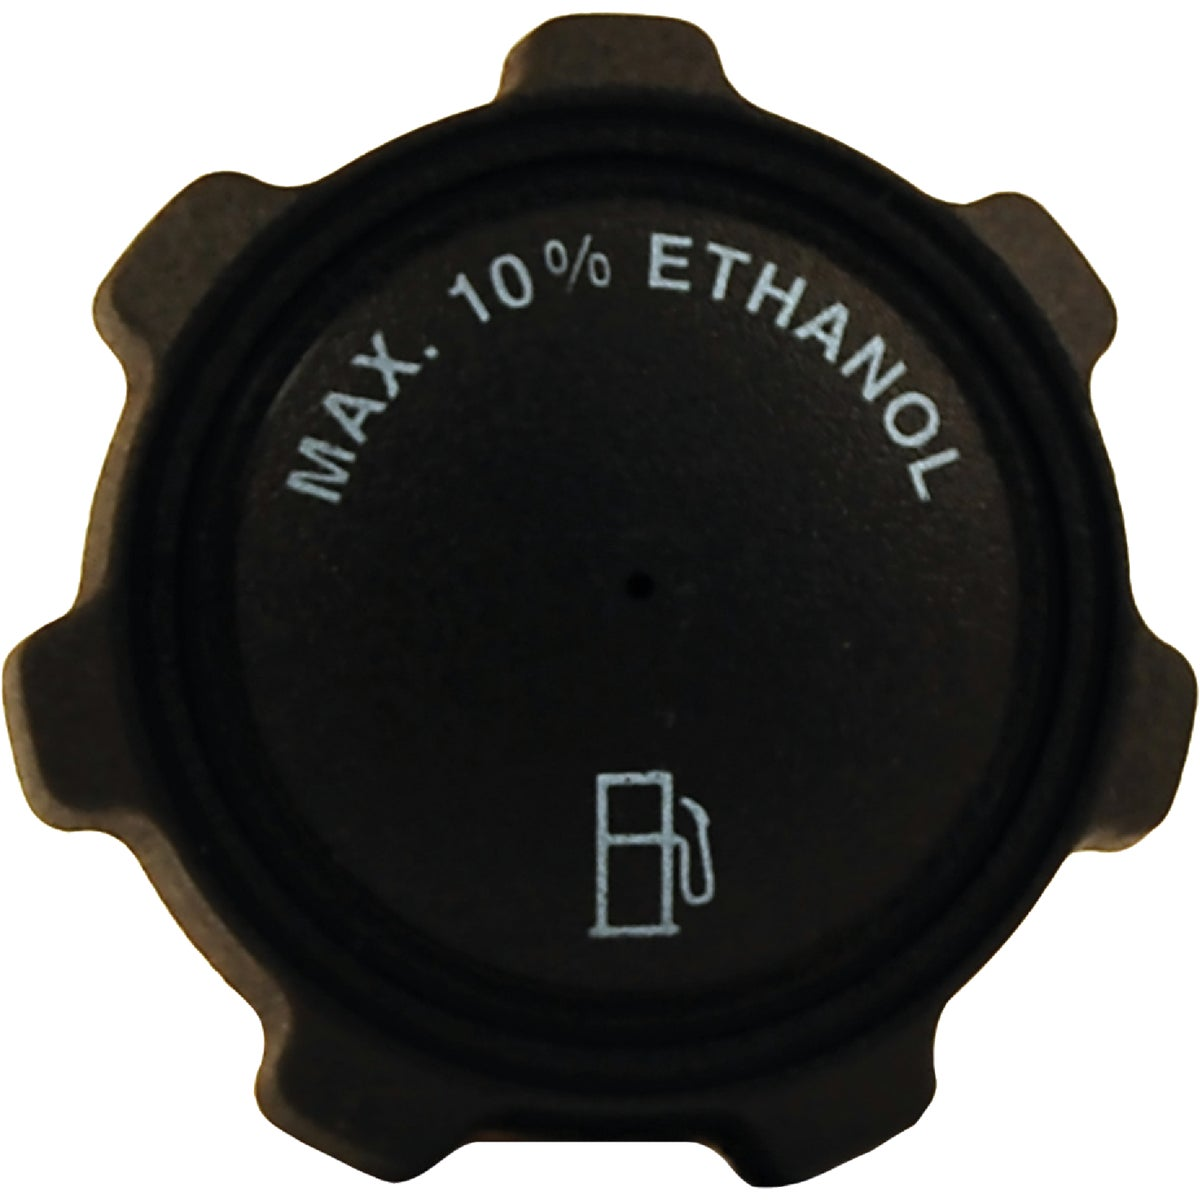 "2-1/8"" MTD TRCTR GAS CAP - GC-300 by Arnold Corp"